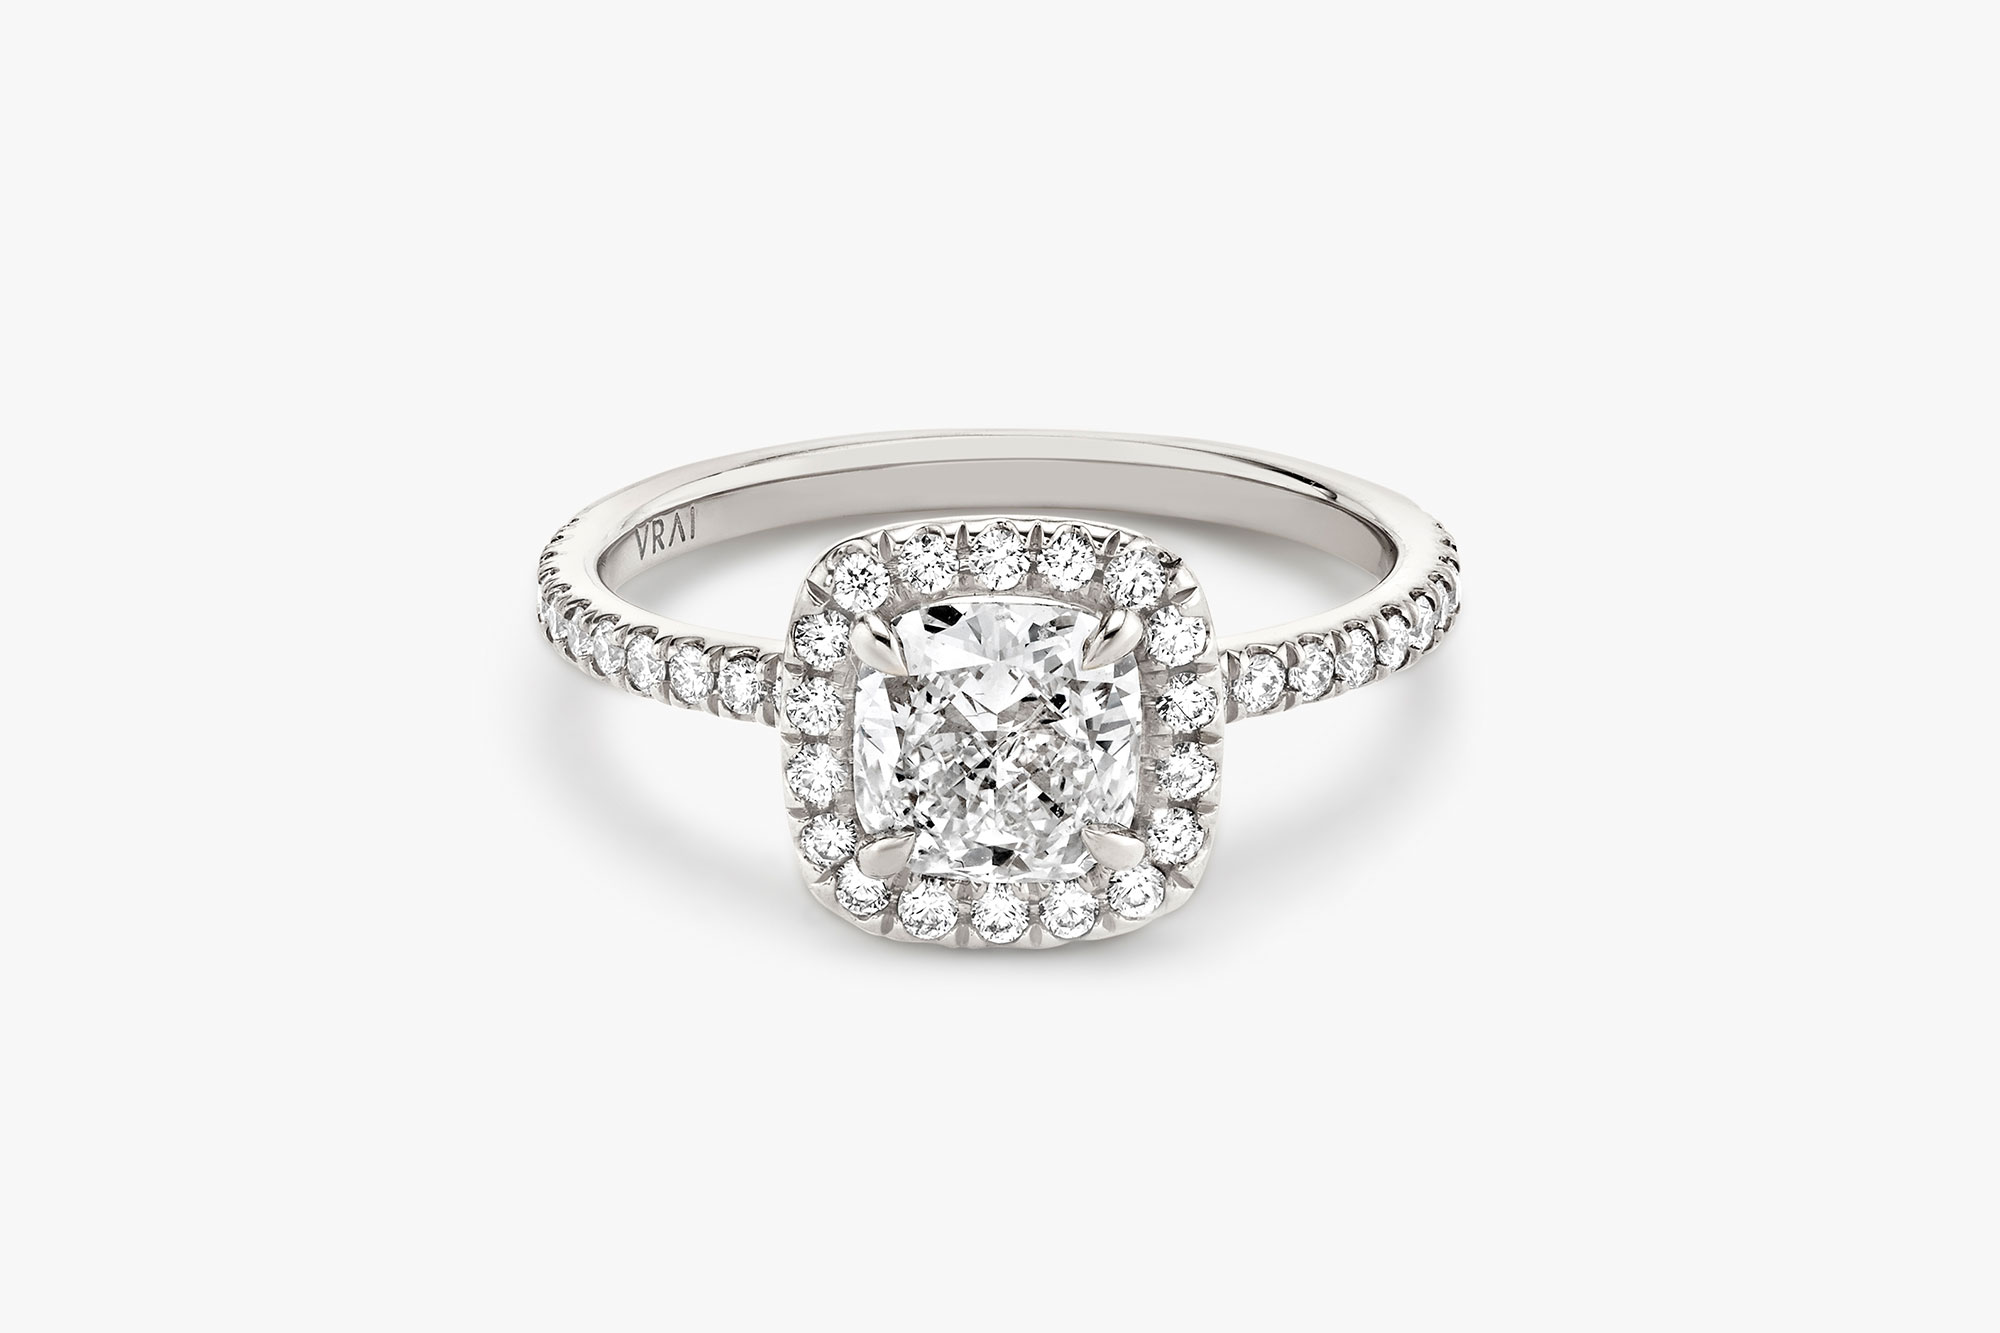 halo ring in platinum with cushion cut diamond and pave band